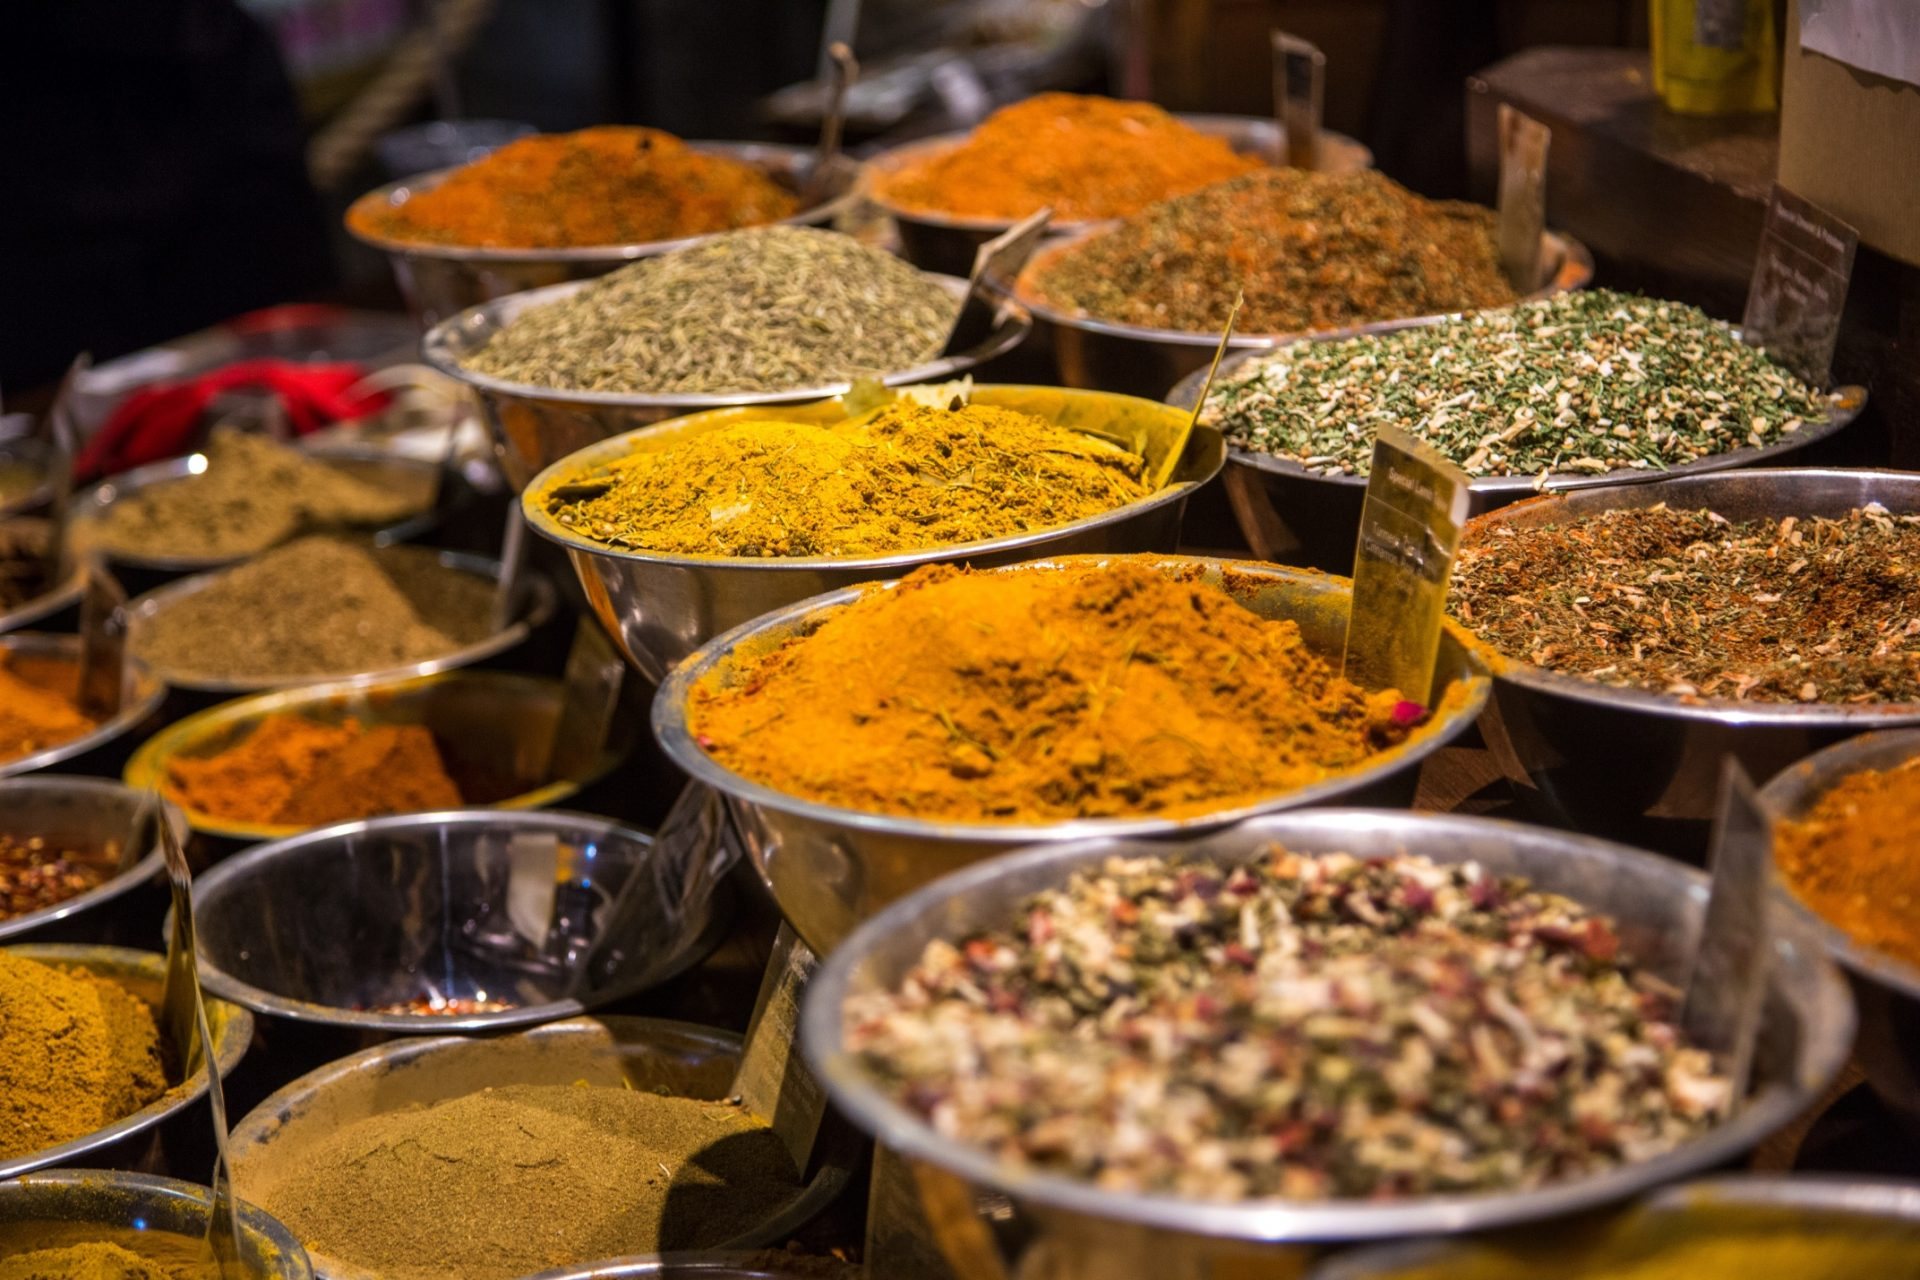 Large bowls with spices on the market